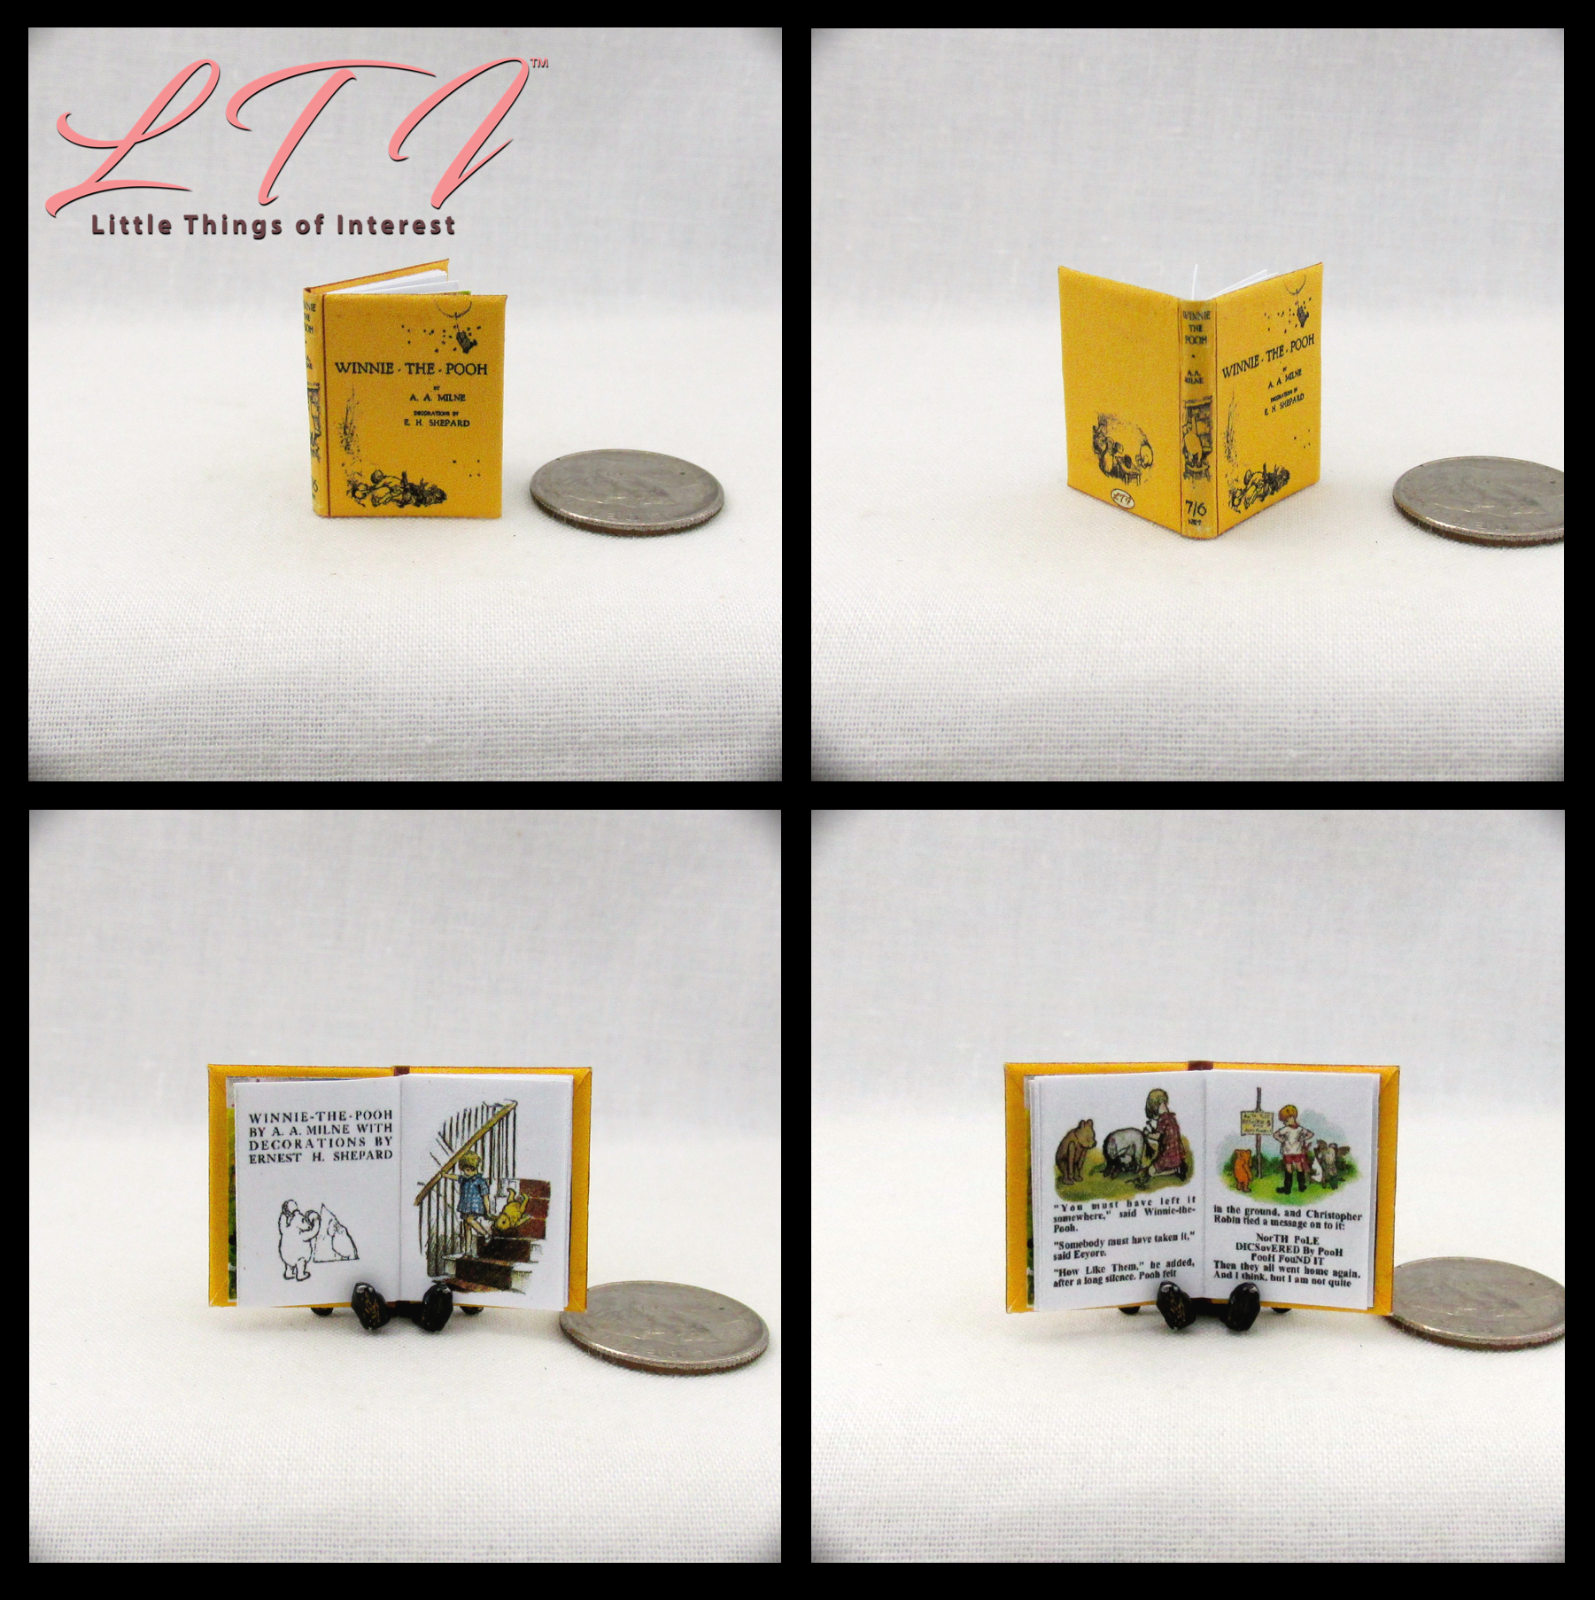 WINNIE THE POOH Miniature Book Dollhouse 1:12 Scale Illustrated Readable Book 2